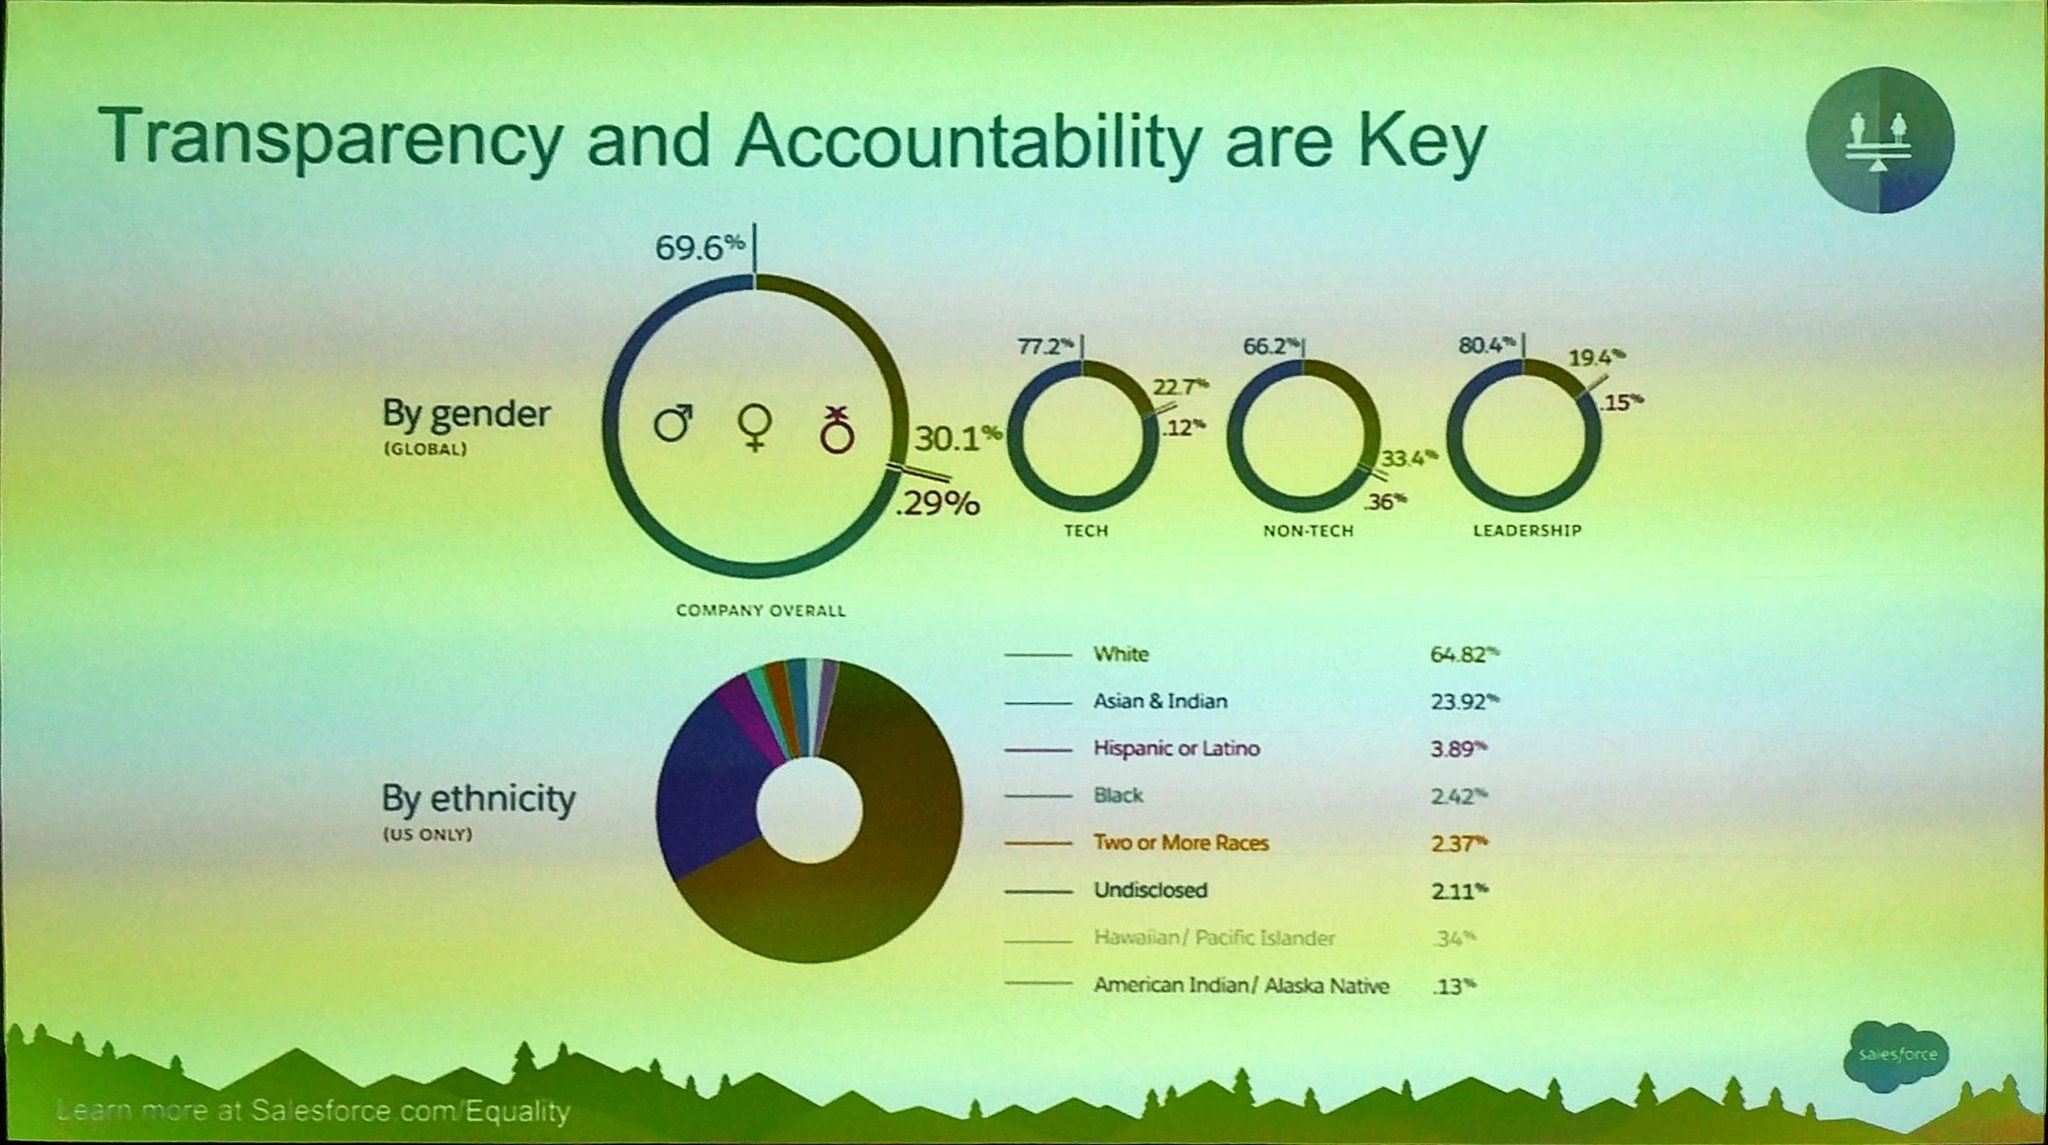 .@Tony_prophet share @Salesforce state of diversity - some areas to be proud, some areas to work on. #SalesforceAR https://t.co/Itjx5qpKdc